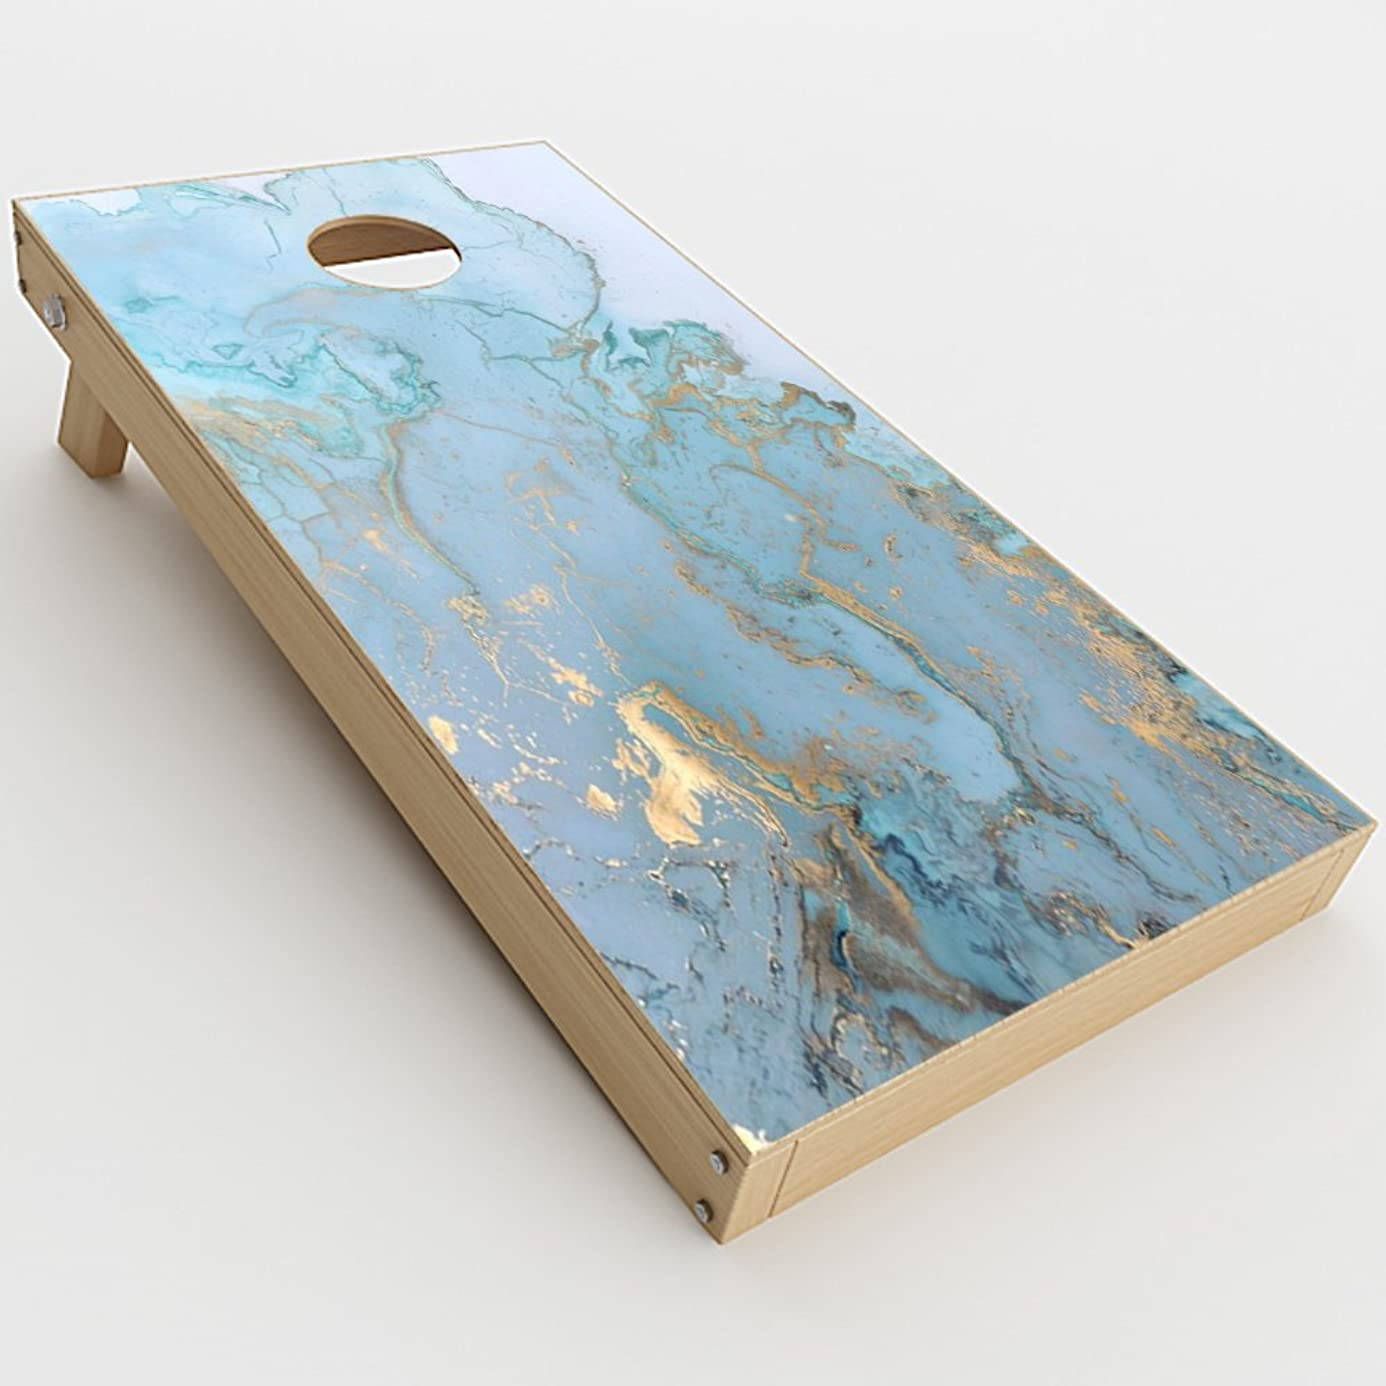 Skin Decal Vinyl Wrap for Cornhole Game Board Bag Toss (2xpcs.) Skins Stickers Cover / Teal Blue Gold White Marble Granite